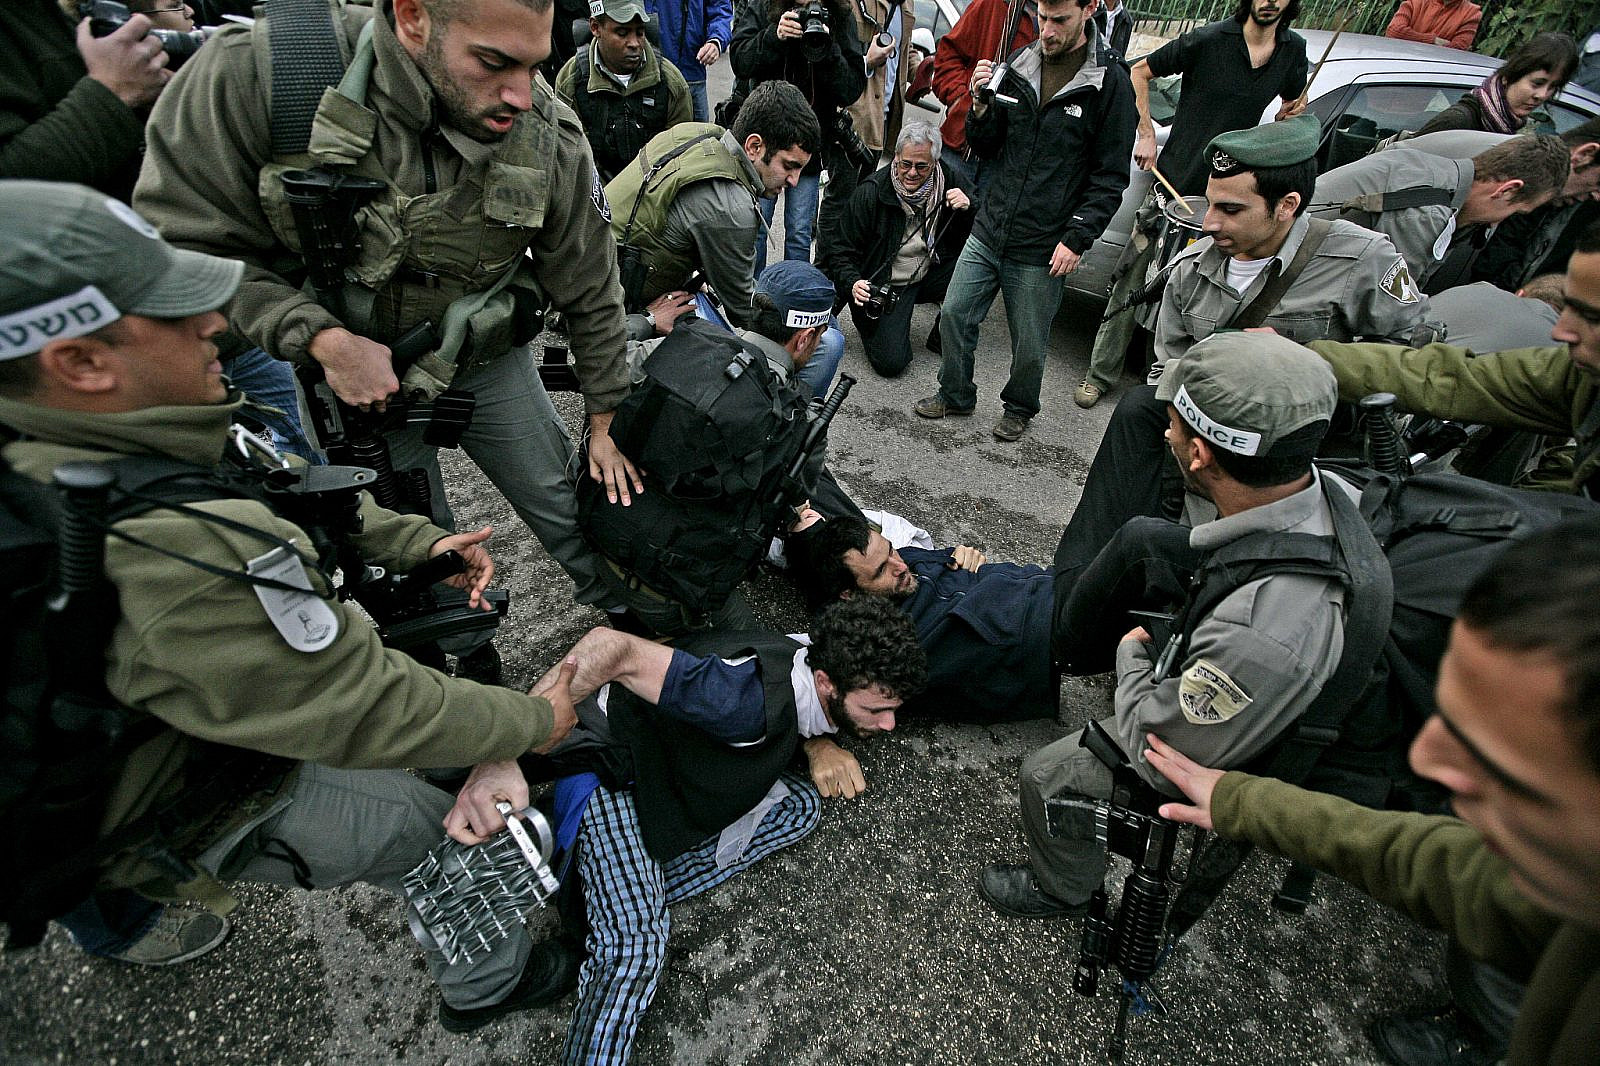 Israeli policemen detain a left-wing Israeli activist during a protest against Jewish settlers taking over homes in the Sheikh Jarrah neighborhood in East Jerusalem, December 11, 2009. (Abir Sultan/Flash90)